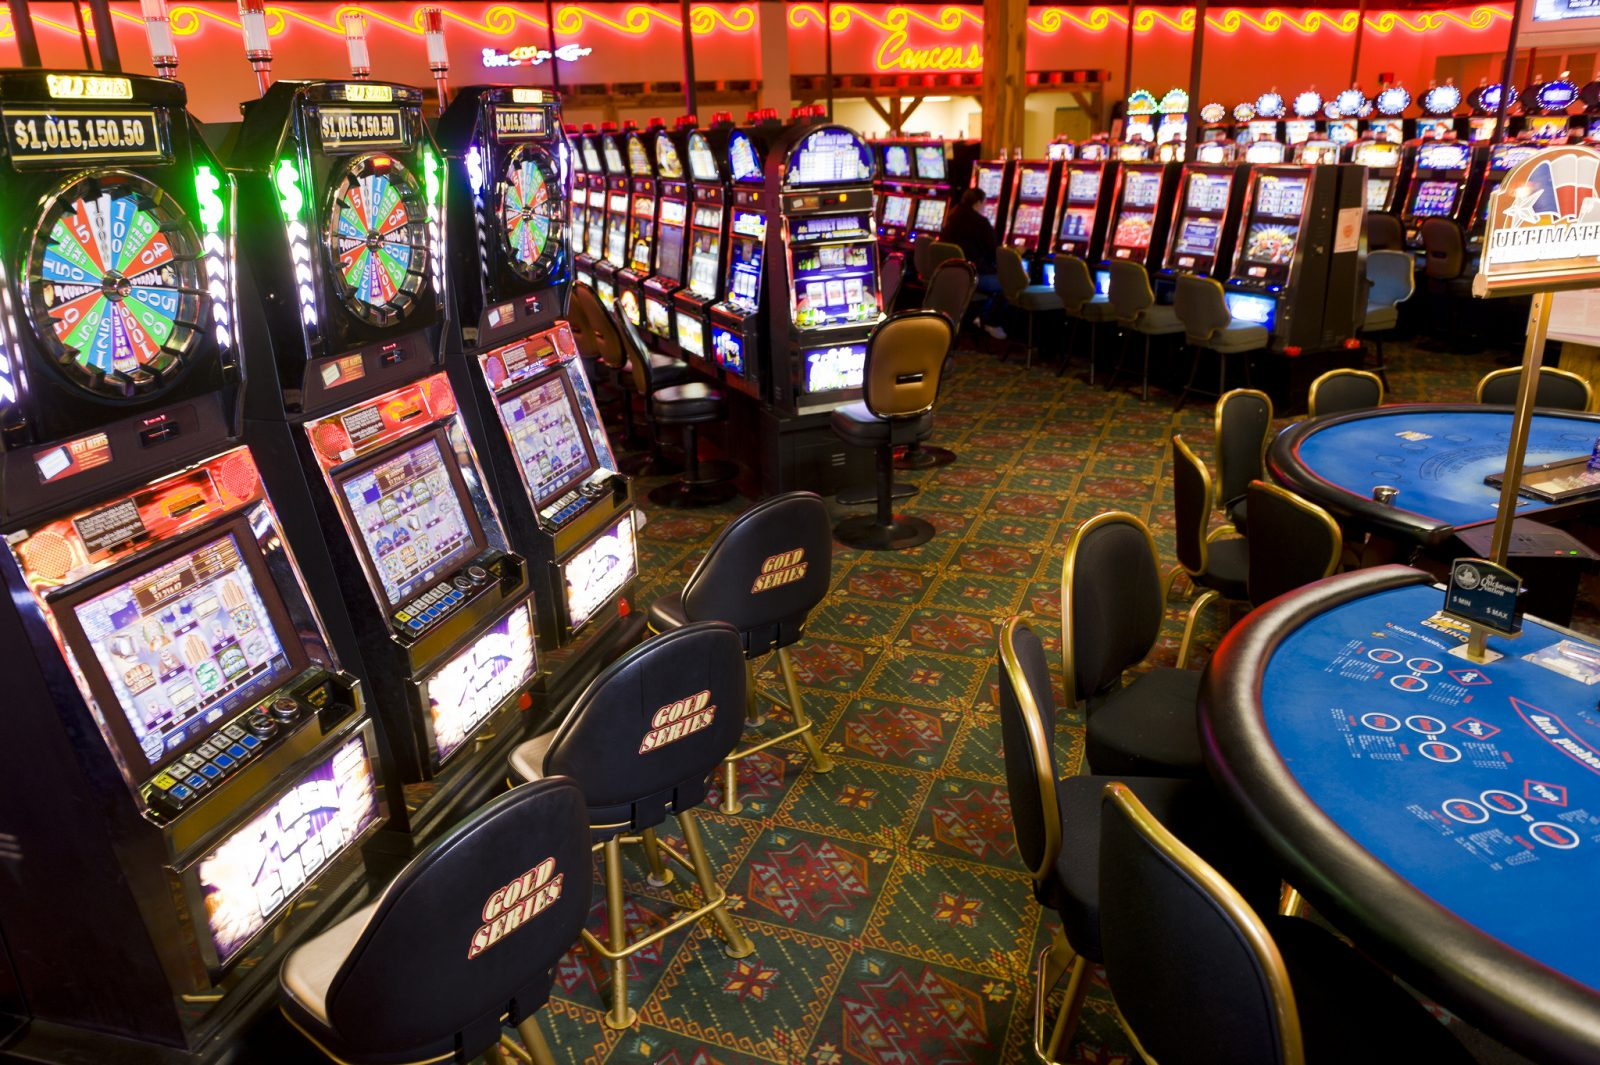 Things that you should consider when looking for online casinos